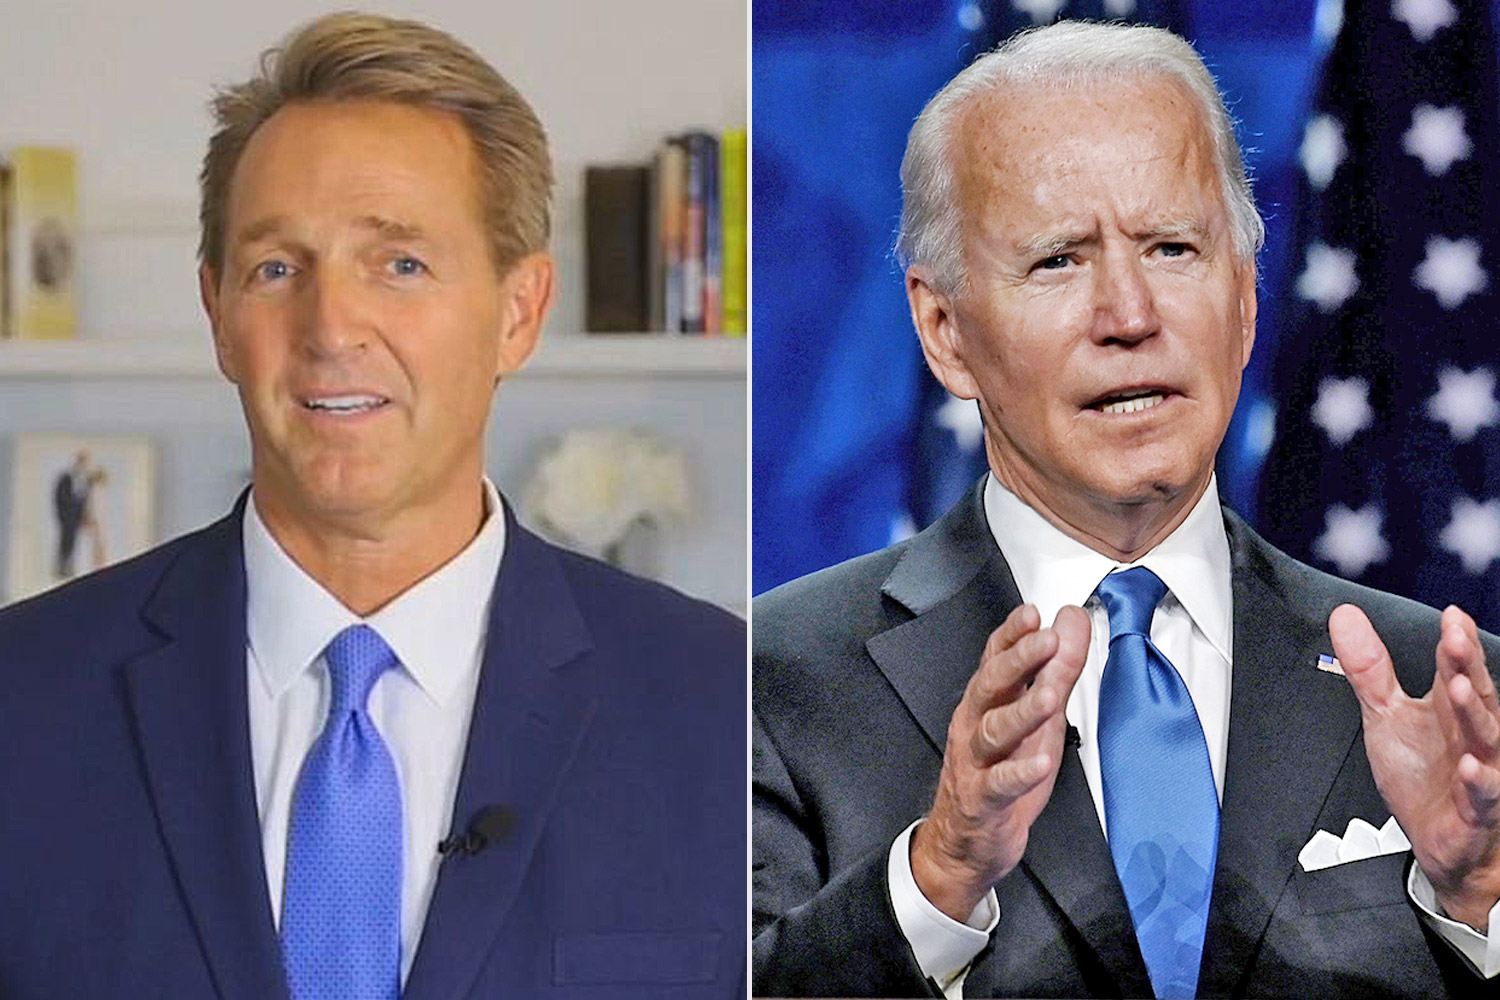 Jeff Flake, Joe Biden